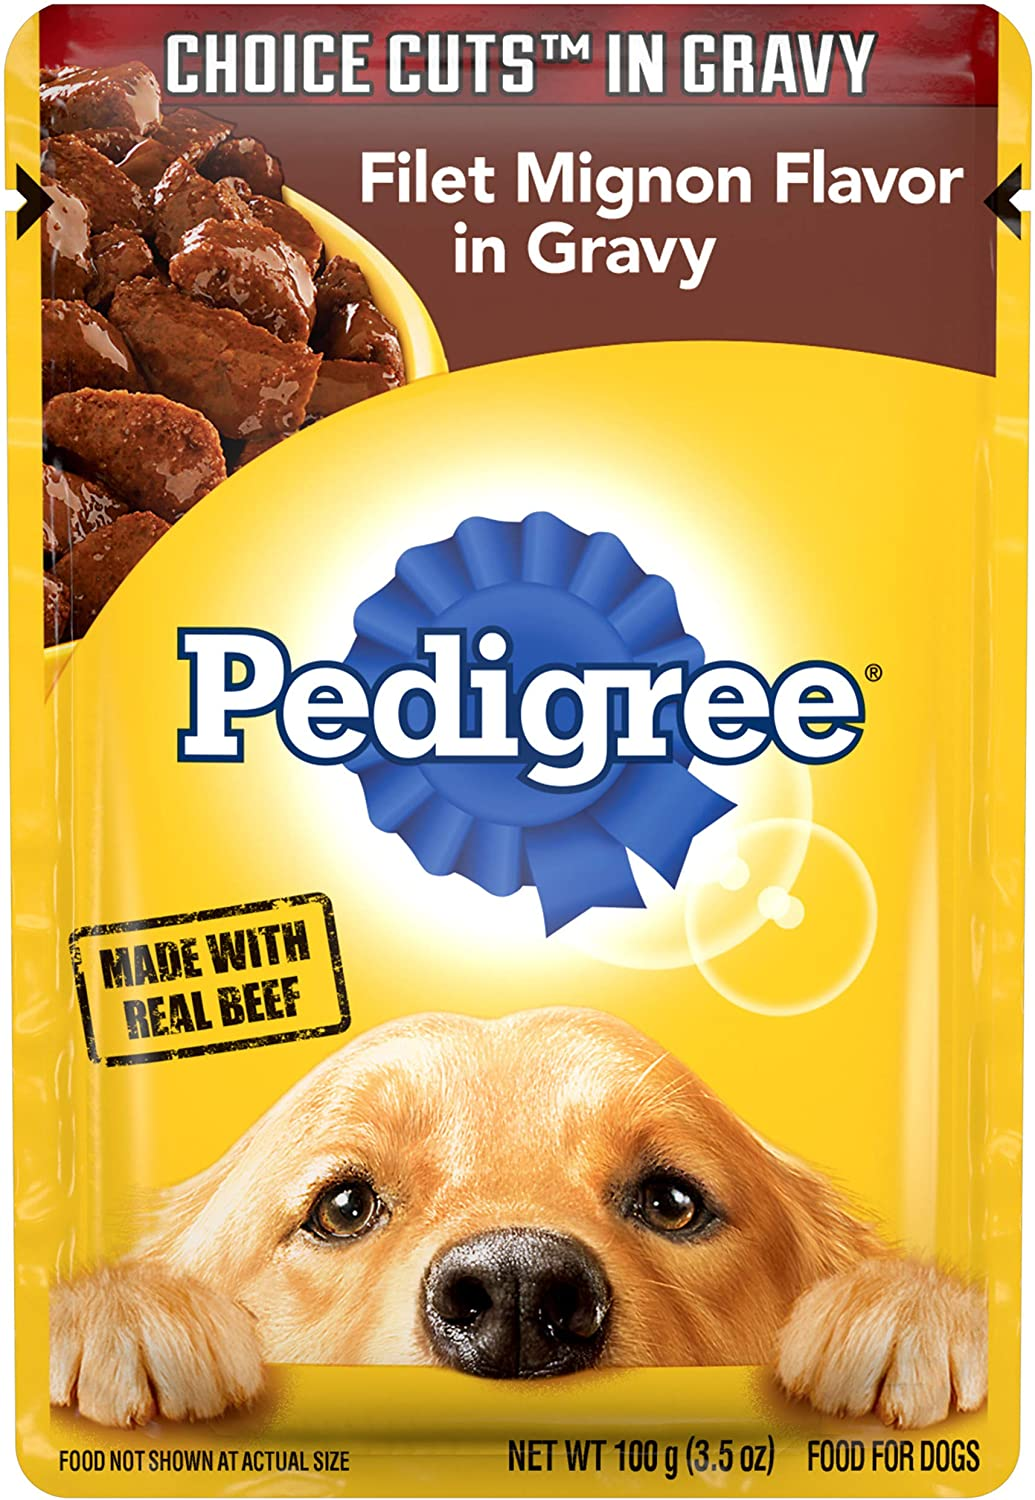 Pedigree Choice Cuts in Gravy